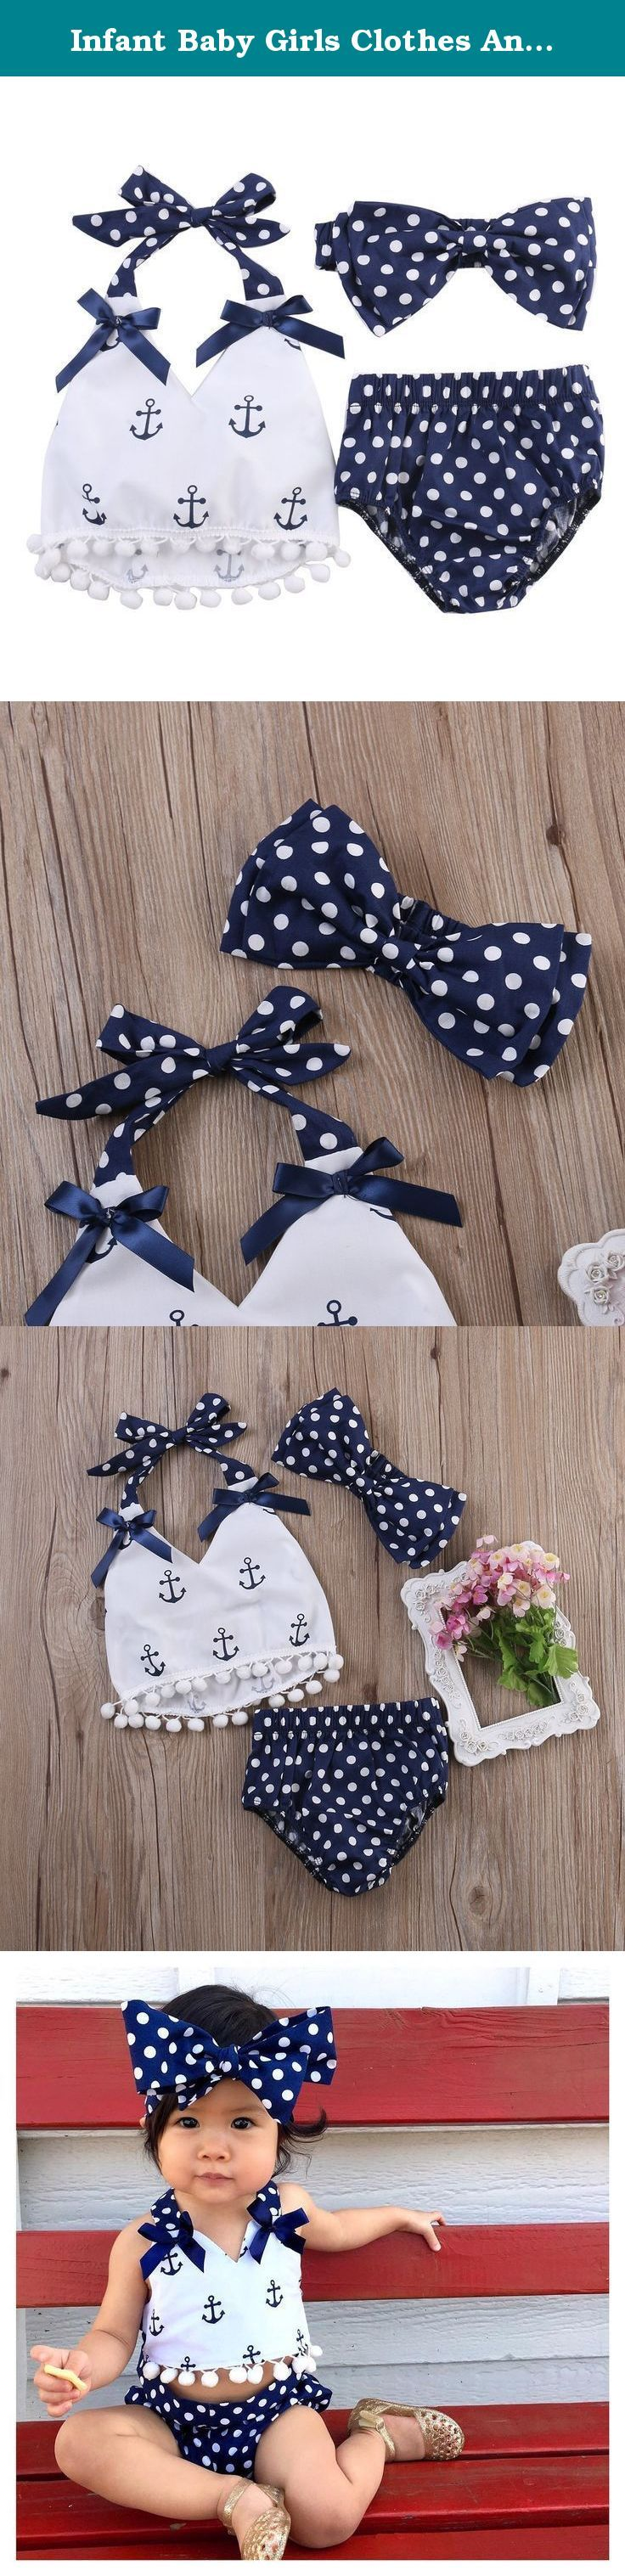 Infant Baby Girls Clothes Anchor Tops+Polka Dot Briefs Outfits Set Sunsuit 0-24M (0-6 Months, Blue). New in Fashion. Material: Cotton Blend. Style:Lace Flower Perfect dress for a vintage photo shoot!. Style: Foraml, Party,Casual. Package included: 1x Tops+Briefs+Head Band.